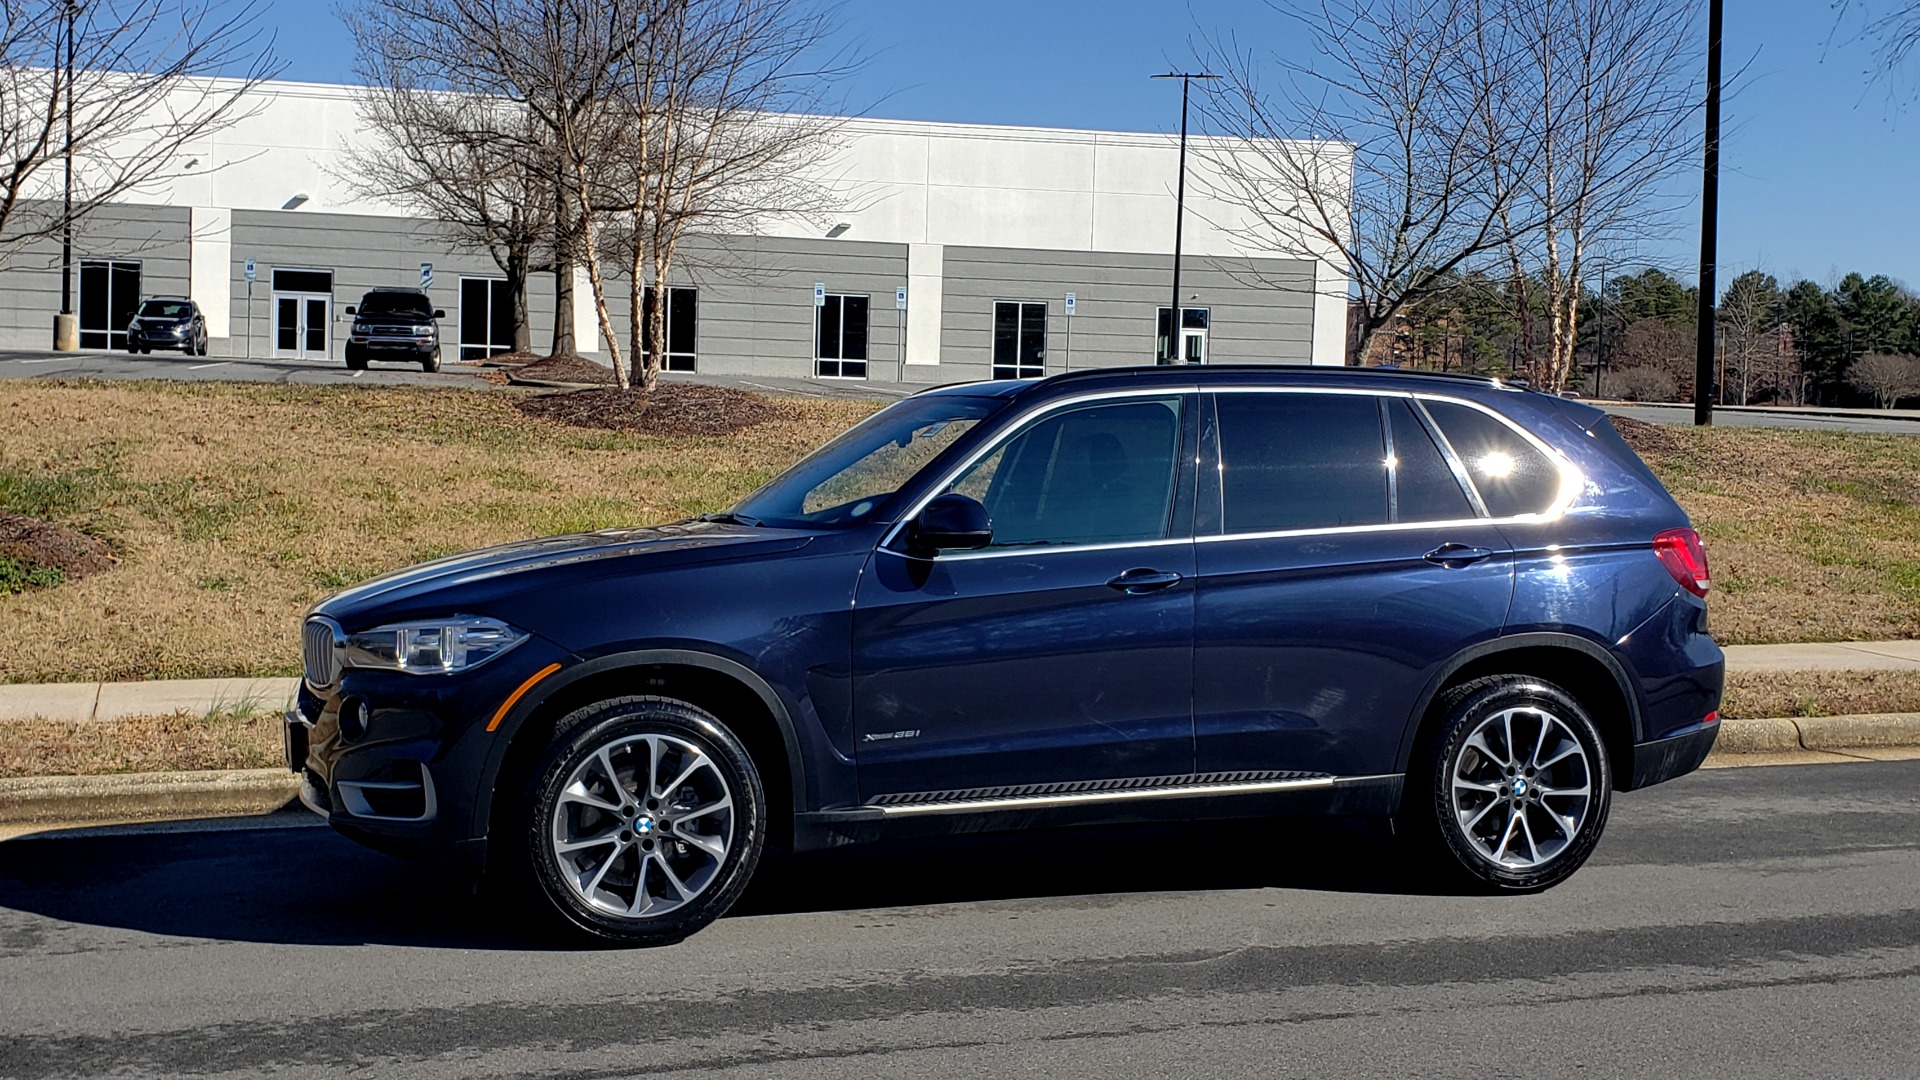 Used 2015 BMW X5 XDRIVE35I PREMIUM / NAV / XLINE / CLD WTHR / DRVR ASST / REARVIEW for sale $24,995 at Formula Imports in Charlotte NC 28227 2